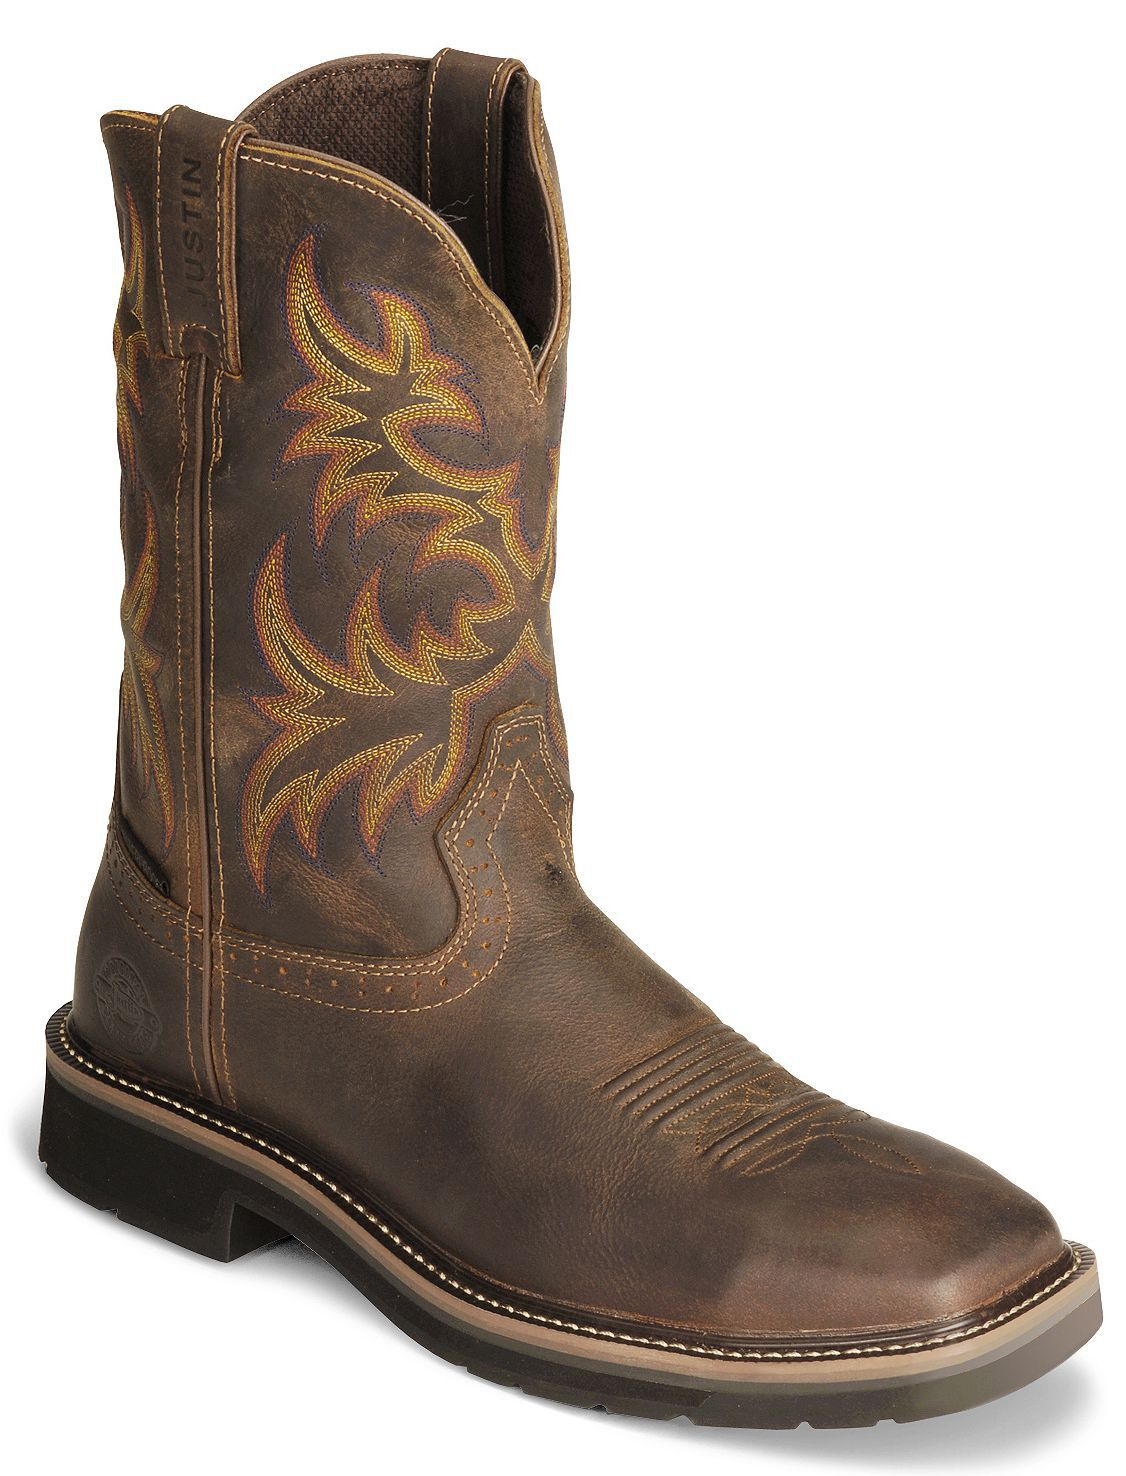 Best Selling Cowboy Boots in Canada